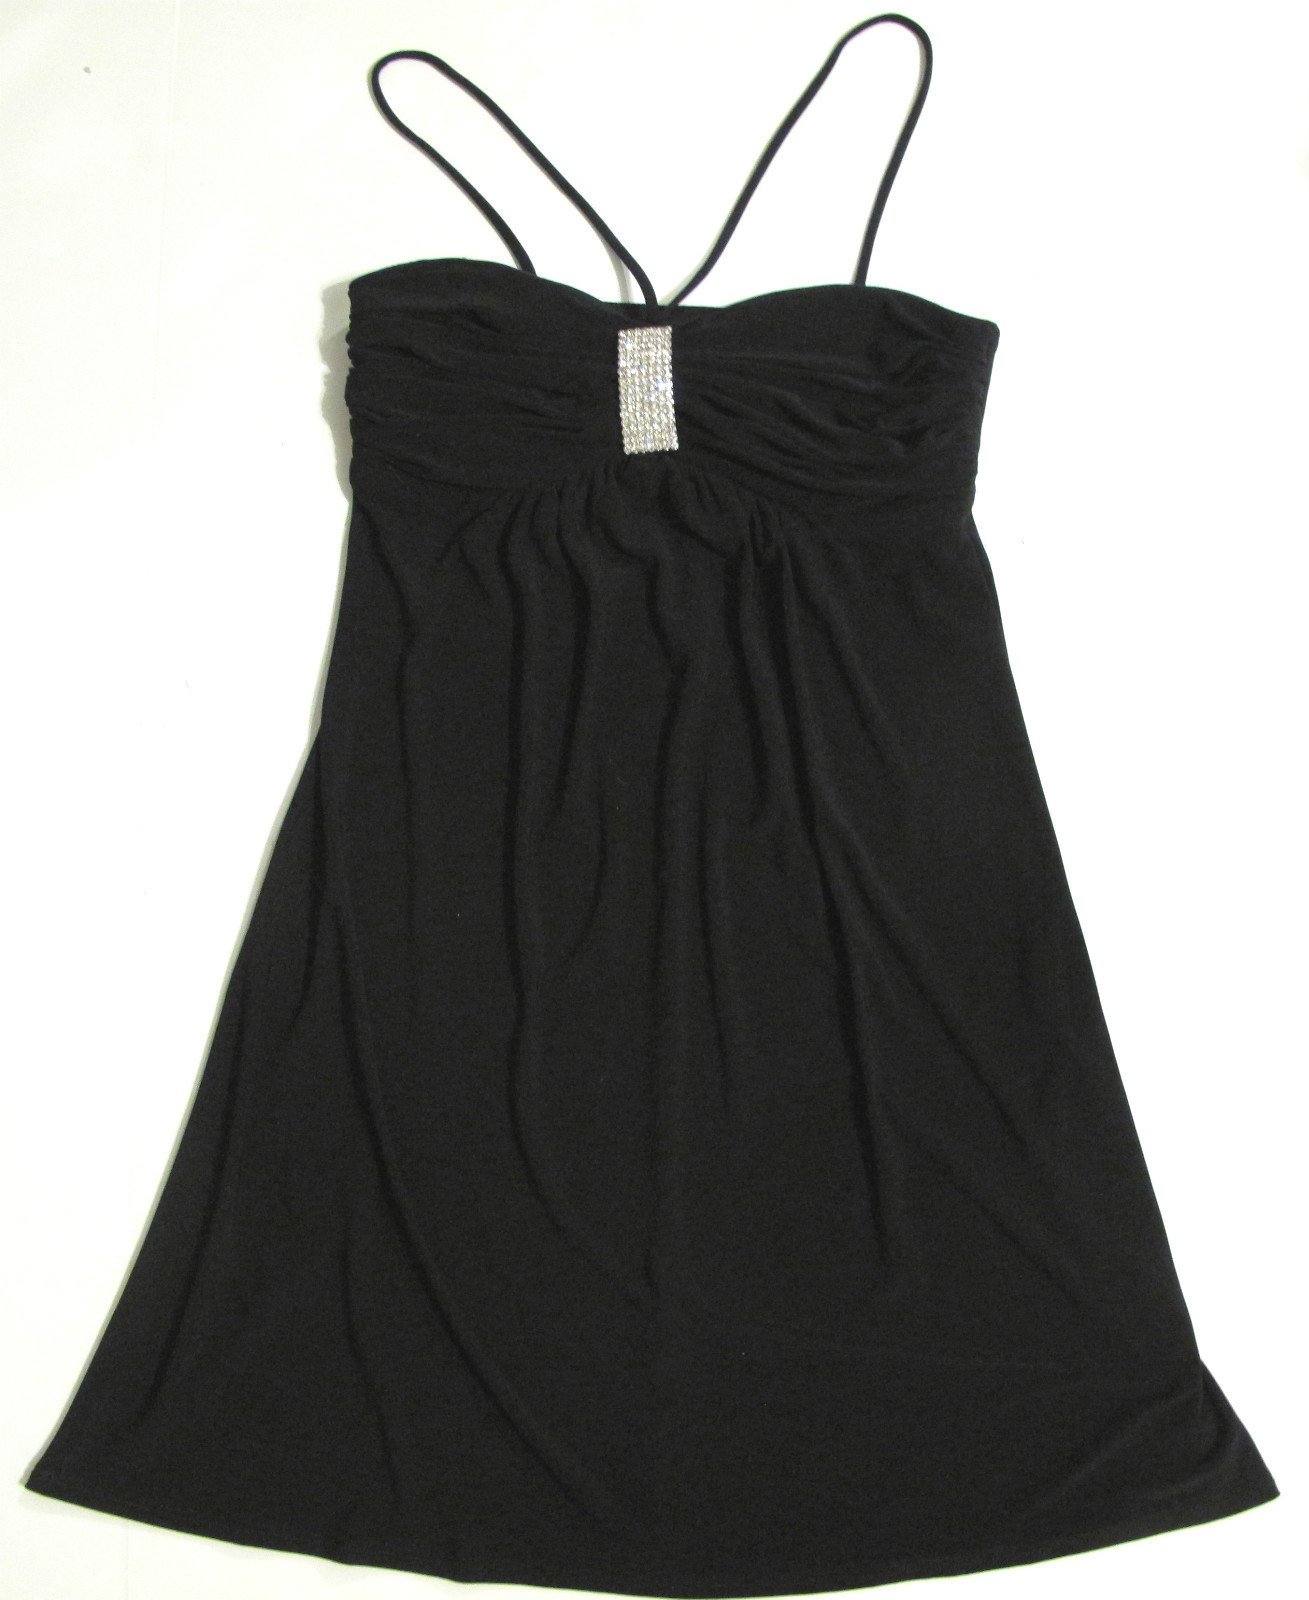 Primary image for Black Spaghetti Strap Dress B. Darlin Size 5/6